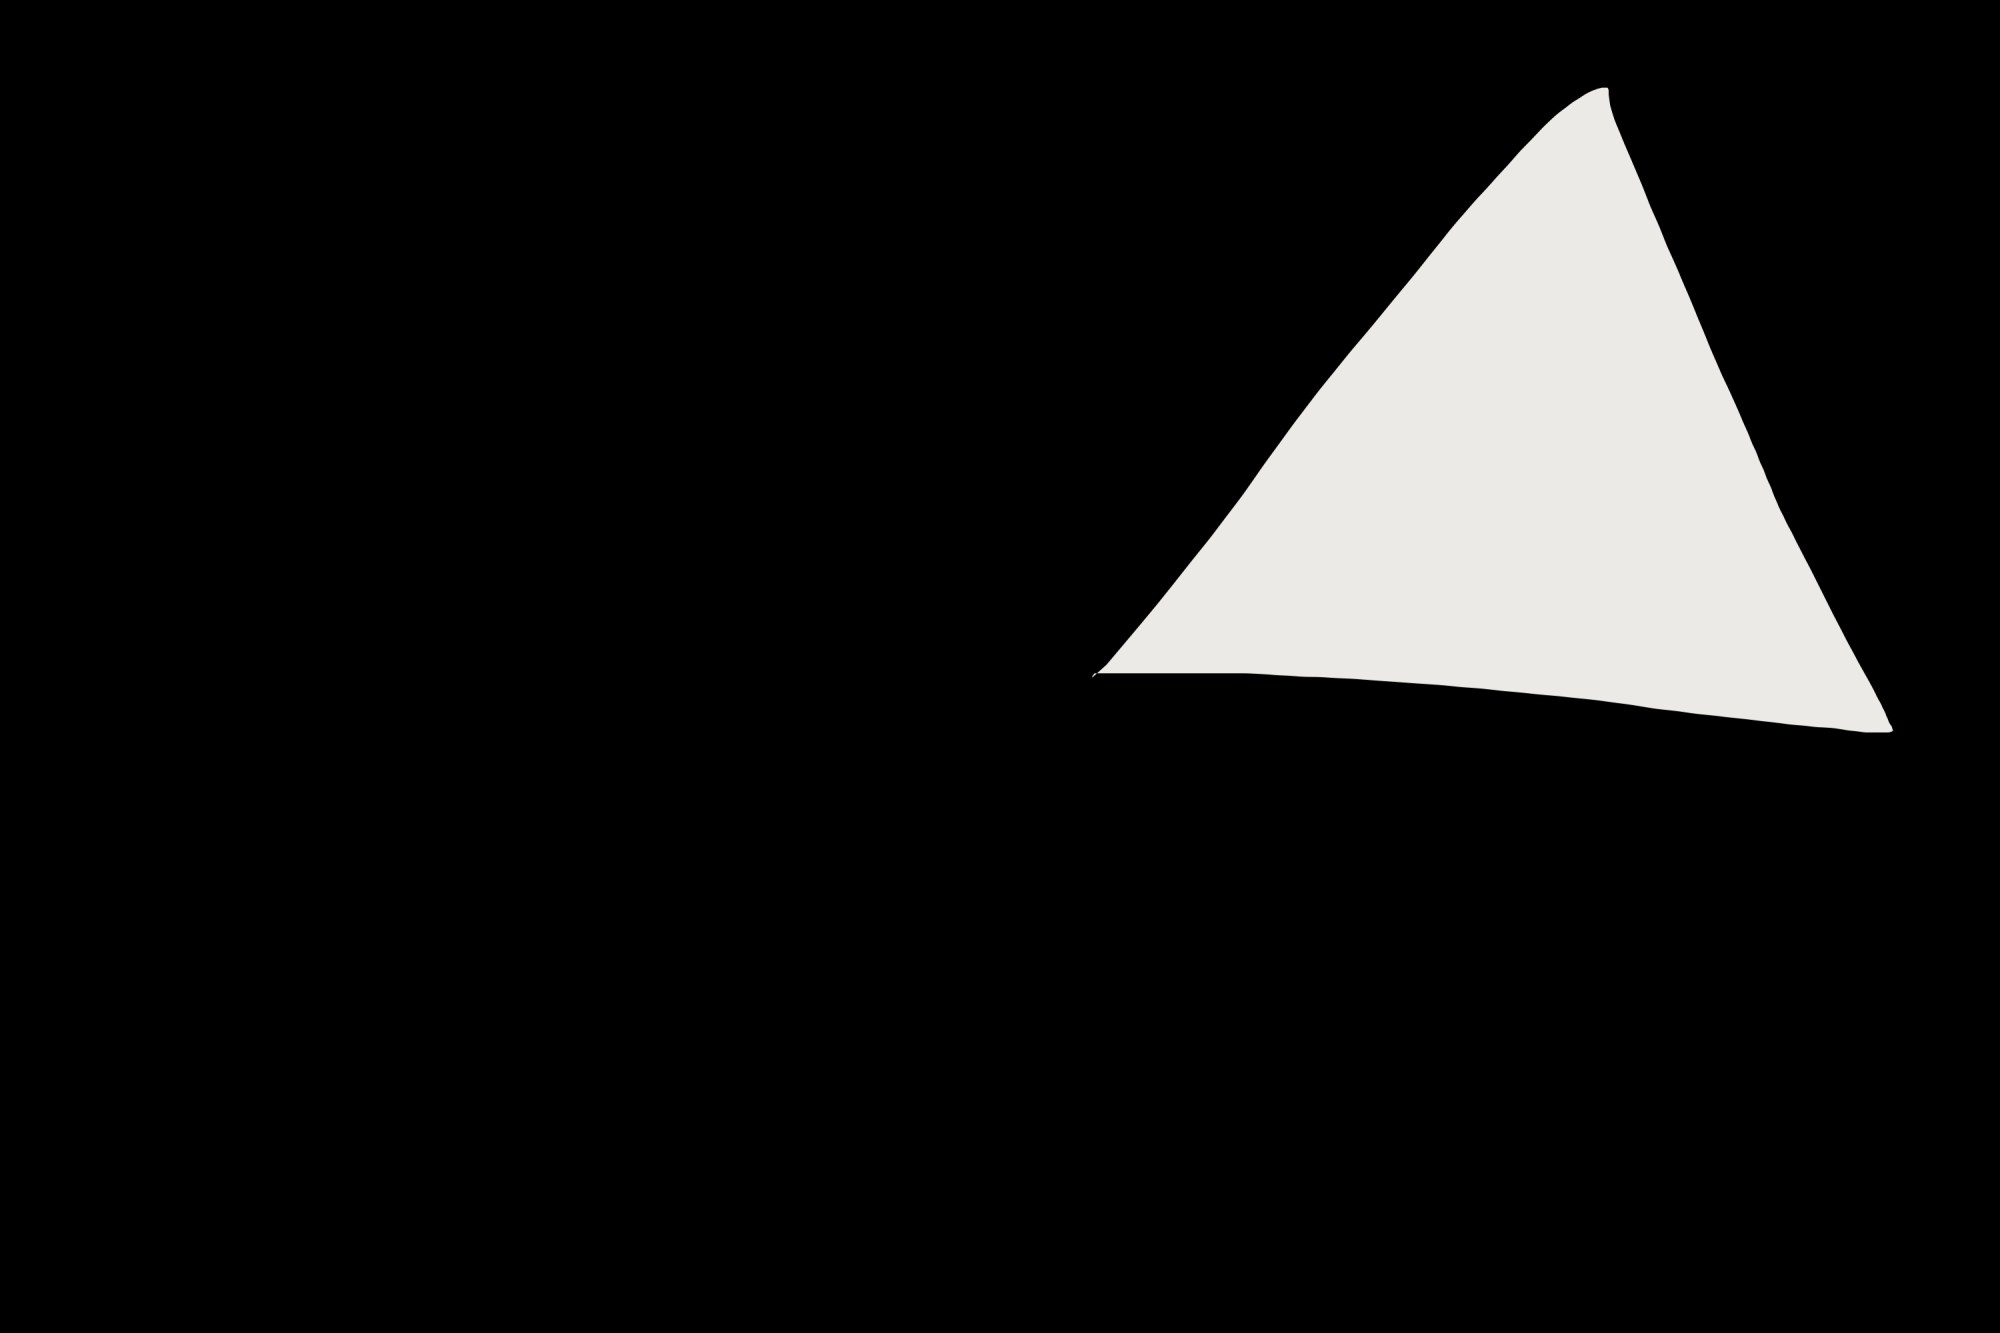 Good closure: Black space around white triangle. Gestalt theory.